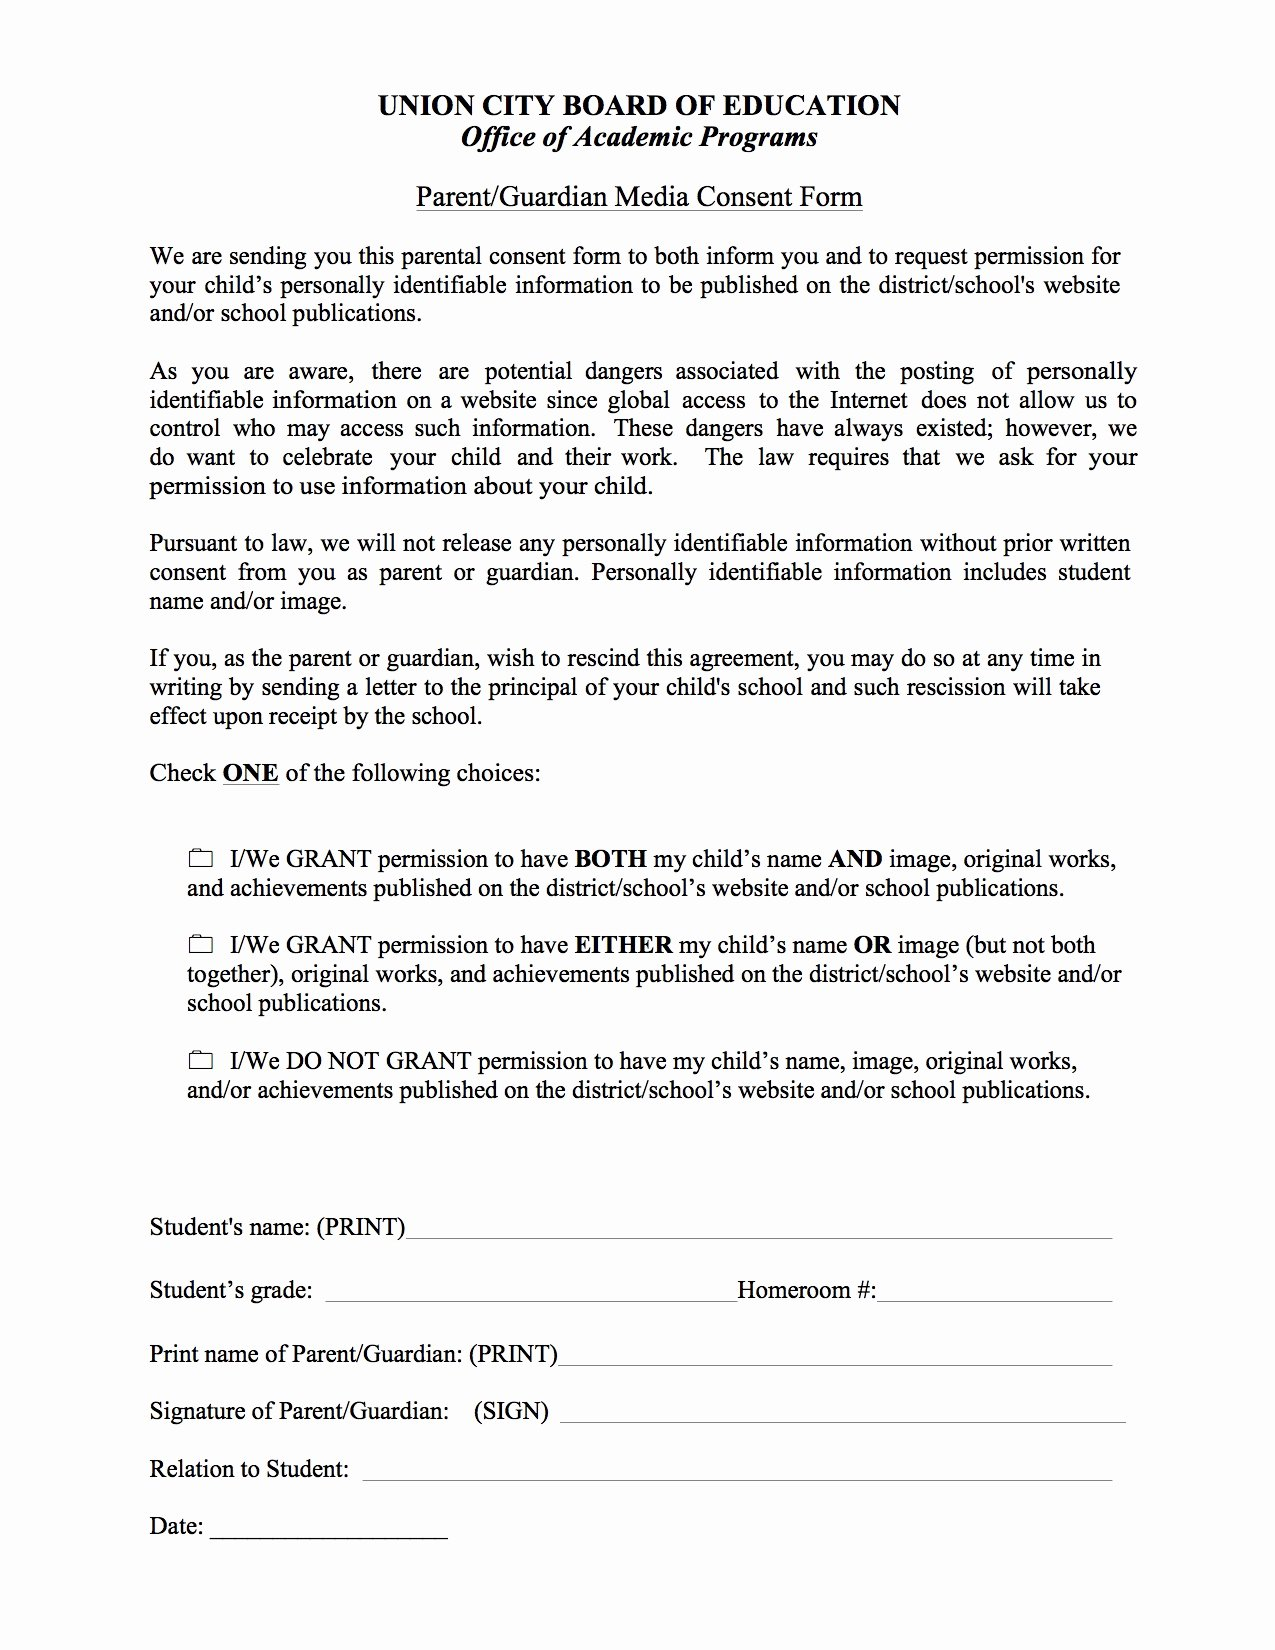 Consent form Sample for Parents Lovely Parent Consent form Basics Union City Public Schools